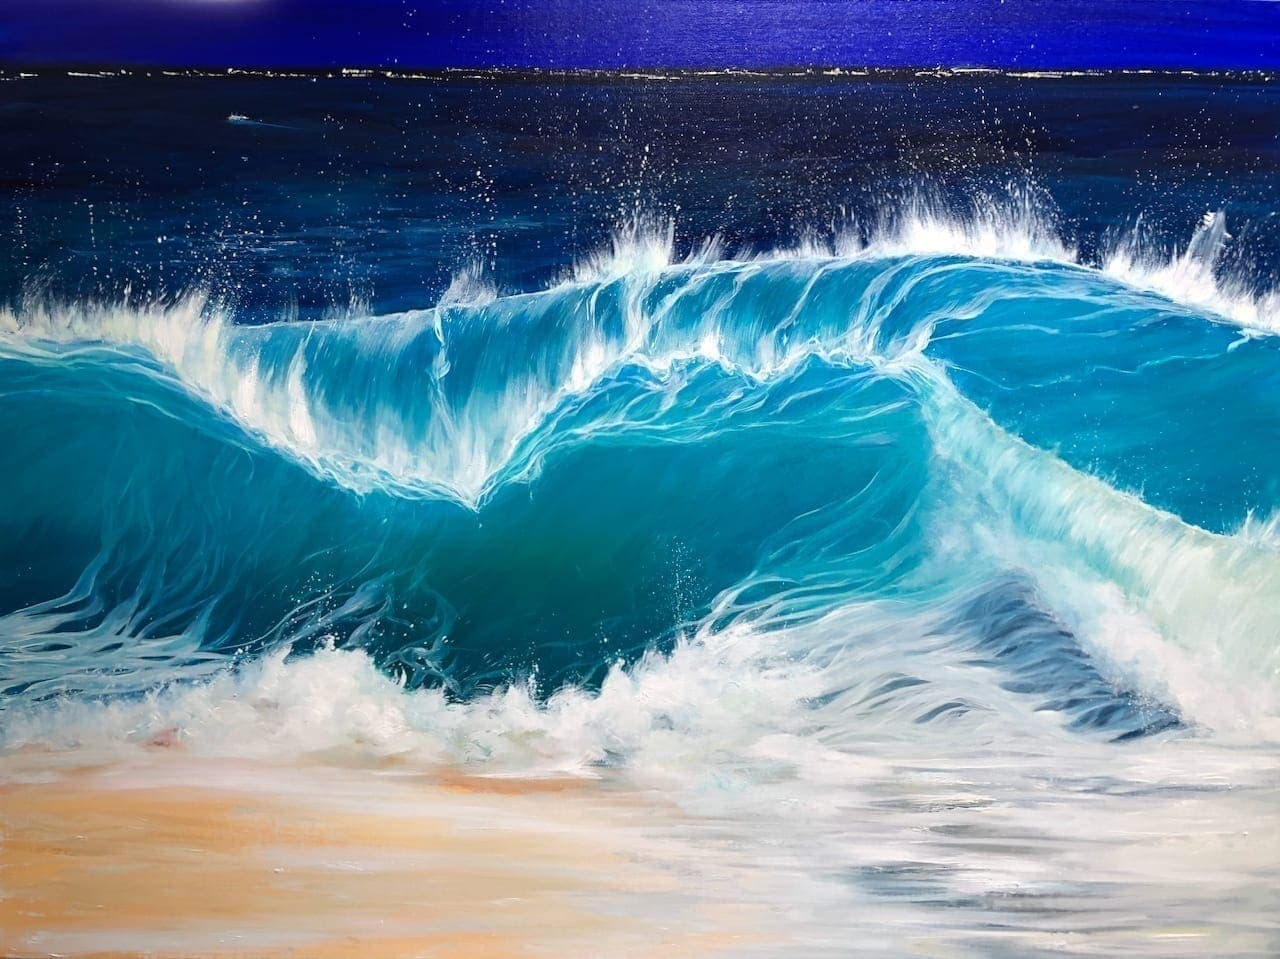 """""""Night Beach III"""" W:40 x H:30 inches oil painting inspired South Devon & Cornish coastline. It shows a turquoise wave cresting at night onto a sandy beach."""